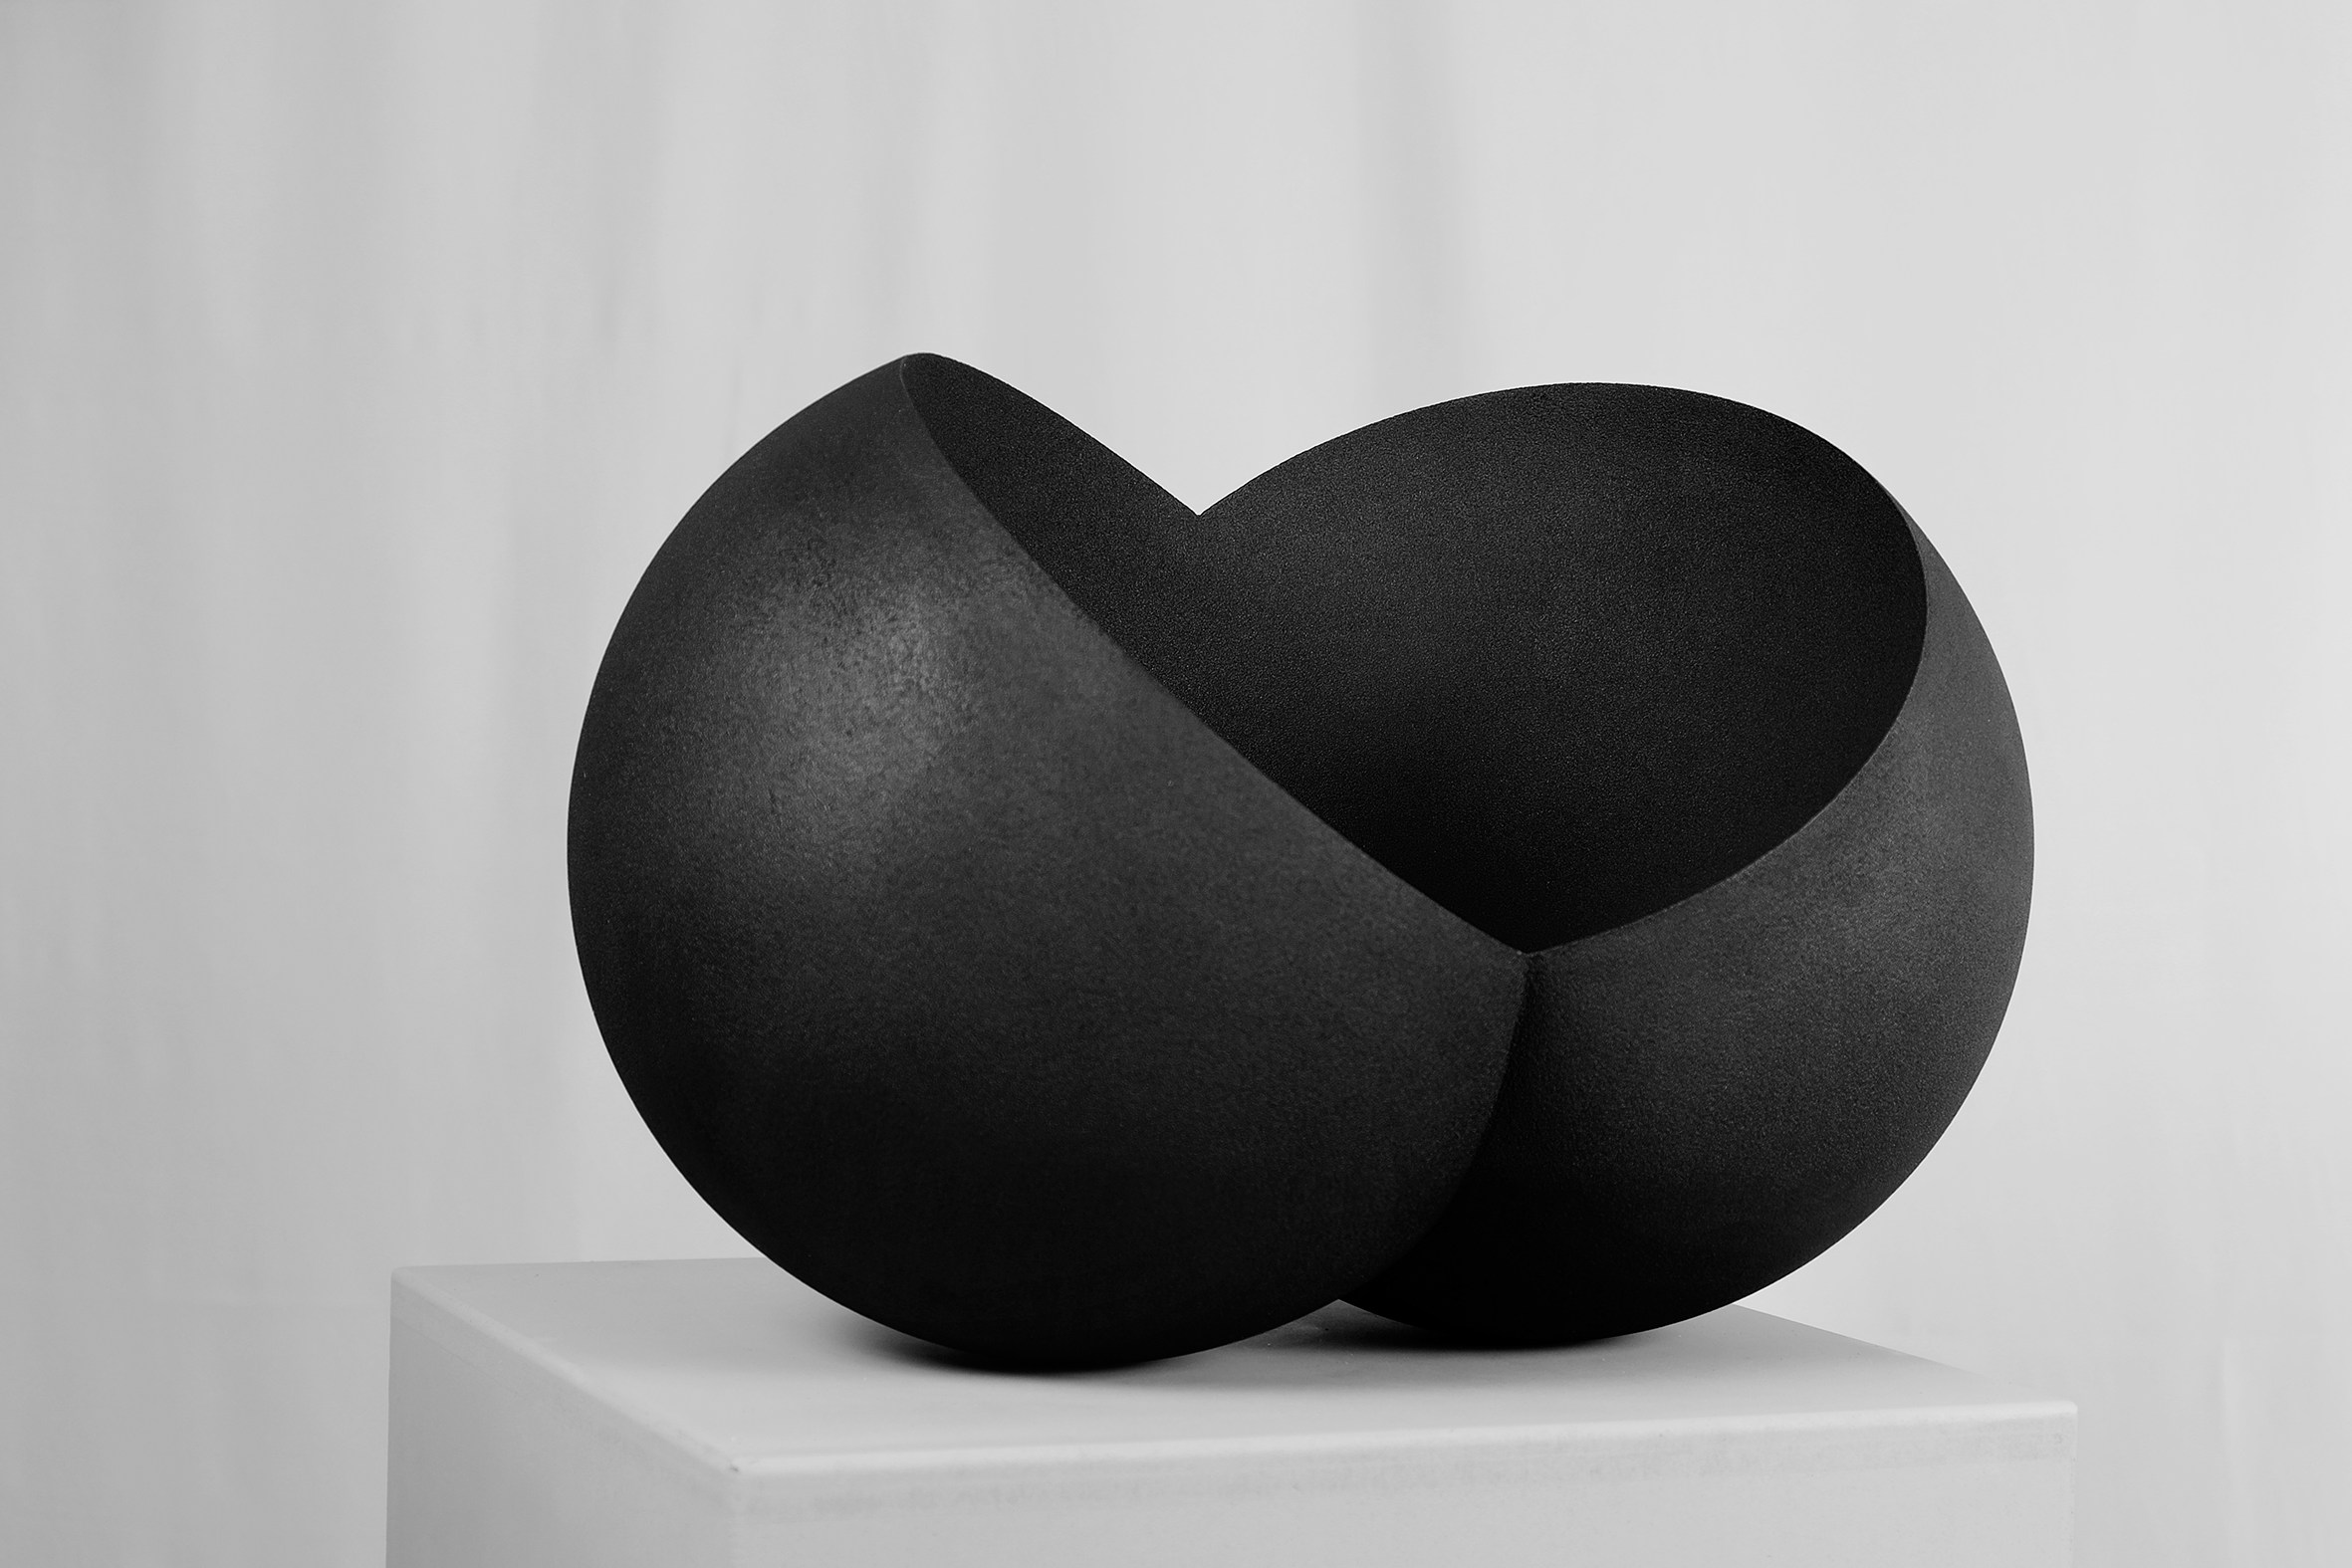 Spherical Creations Artist Dario Santacroce Creates Amazing 3D Printed Sandstone Sculptures